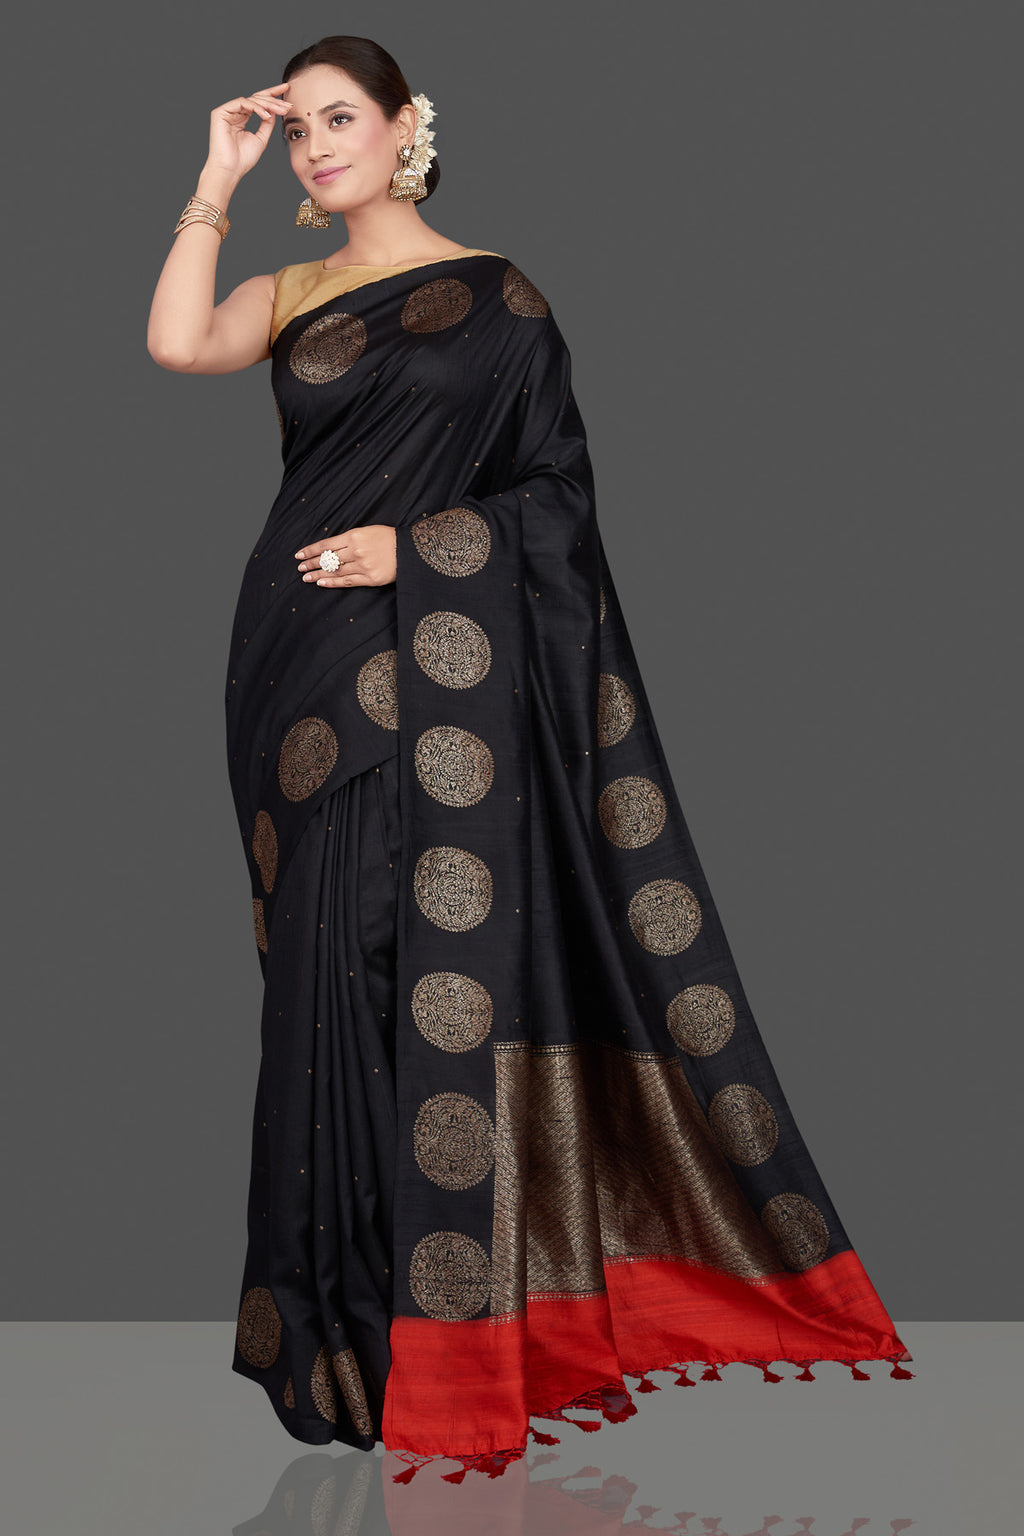 Buy ravishing black tussar Benarasi saree online in USA with antique zari buta border. Go for stunning Indian designer sarees, georgette sarees, handwoven saris, embroidered sarees for festive occasions and weddings from Pure Elegance Indian clothing store in USA.-full view